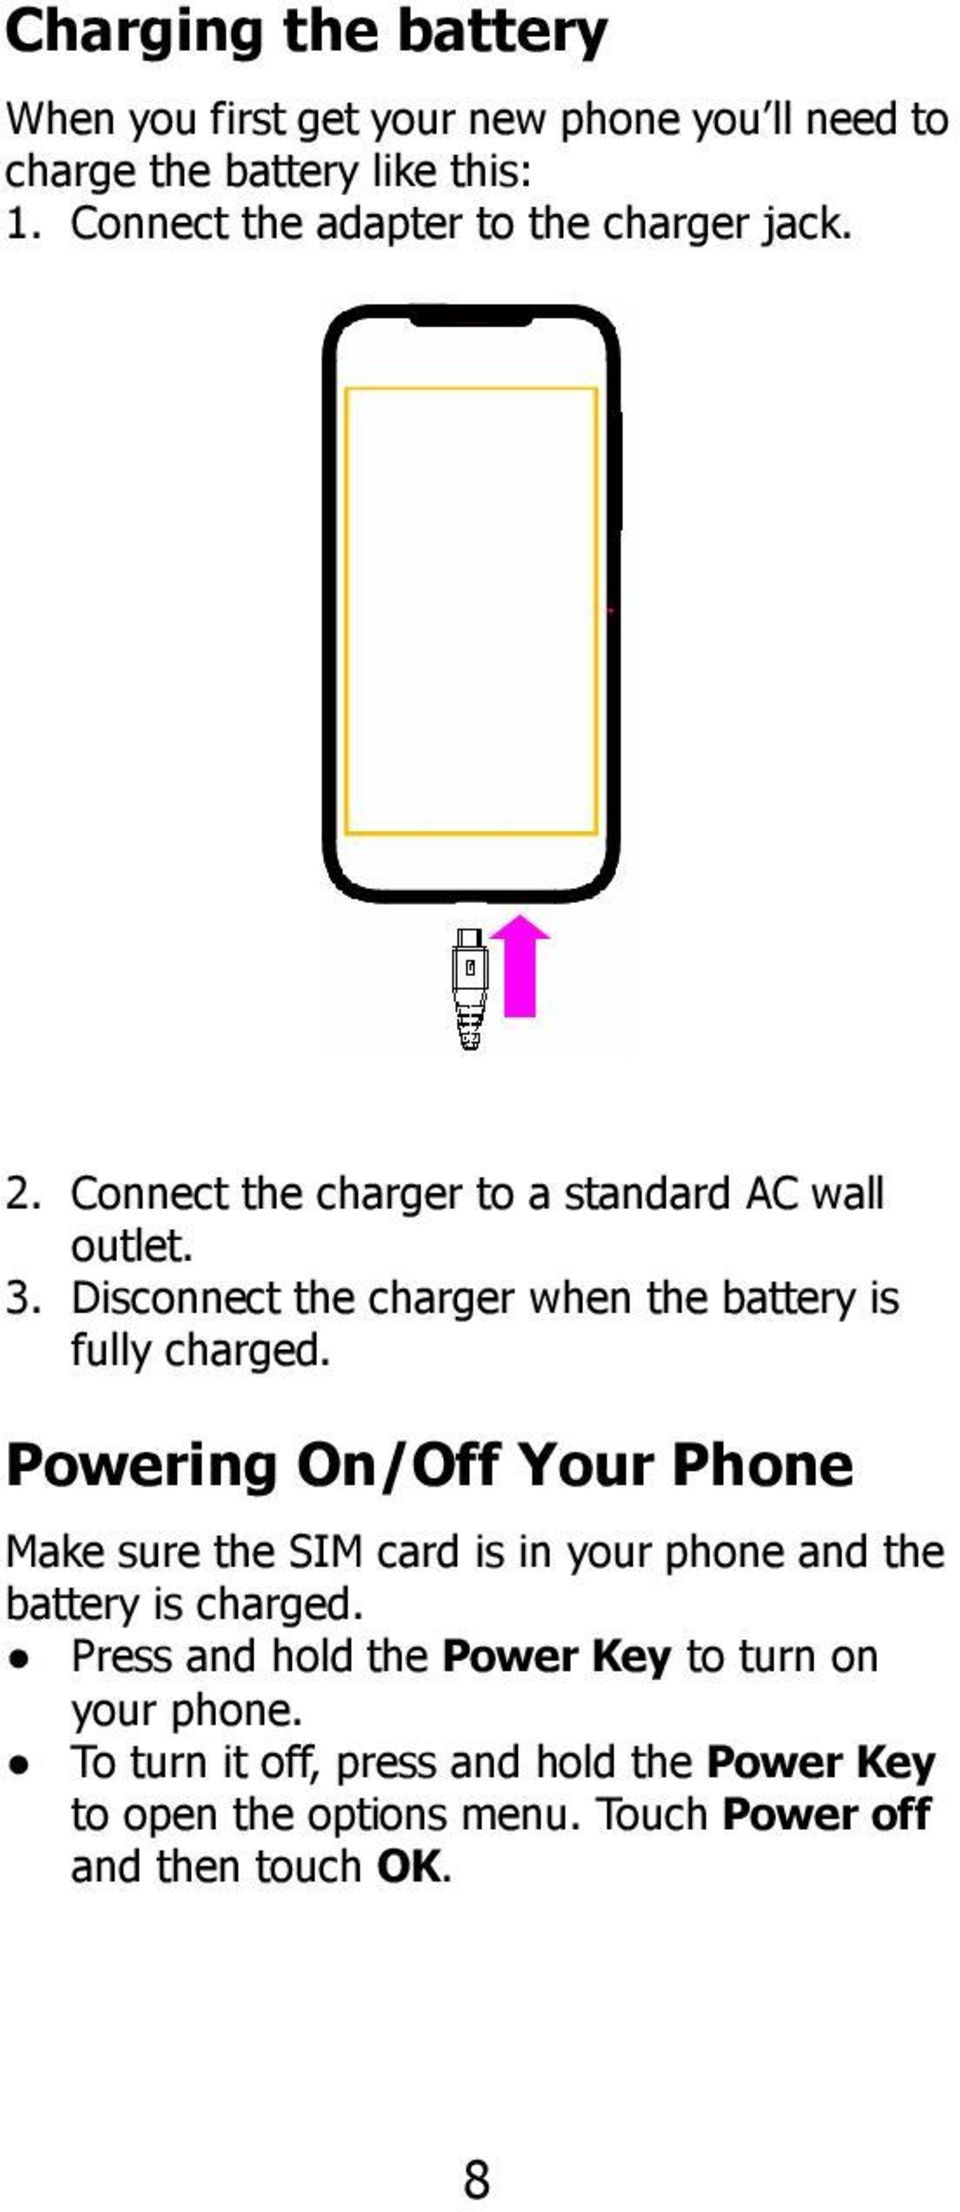 Disconnect the charger when the battery is fully charged.